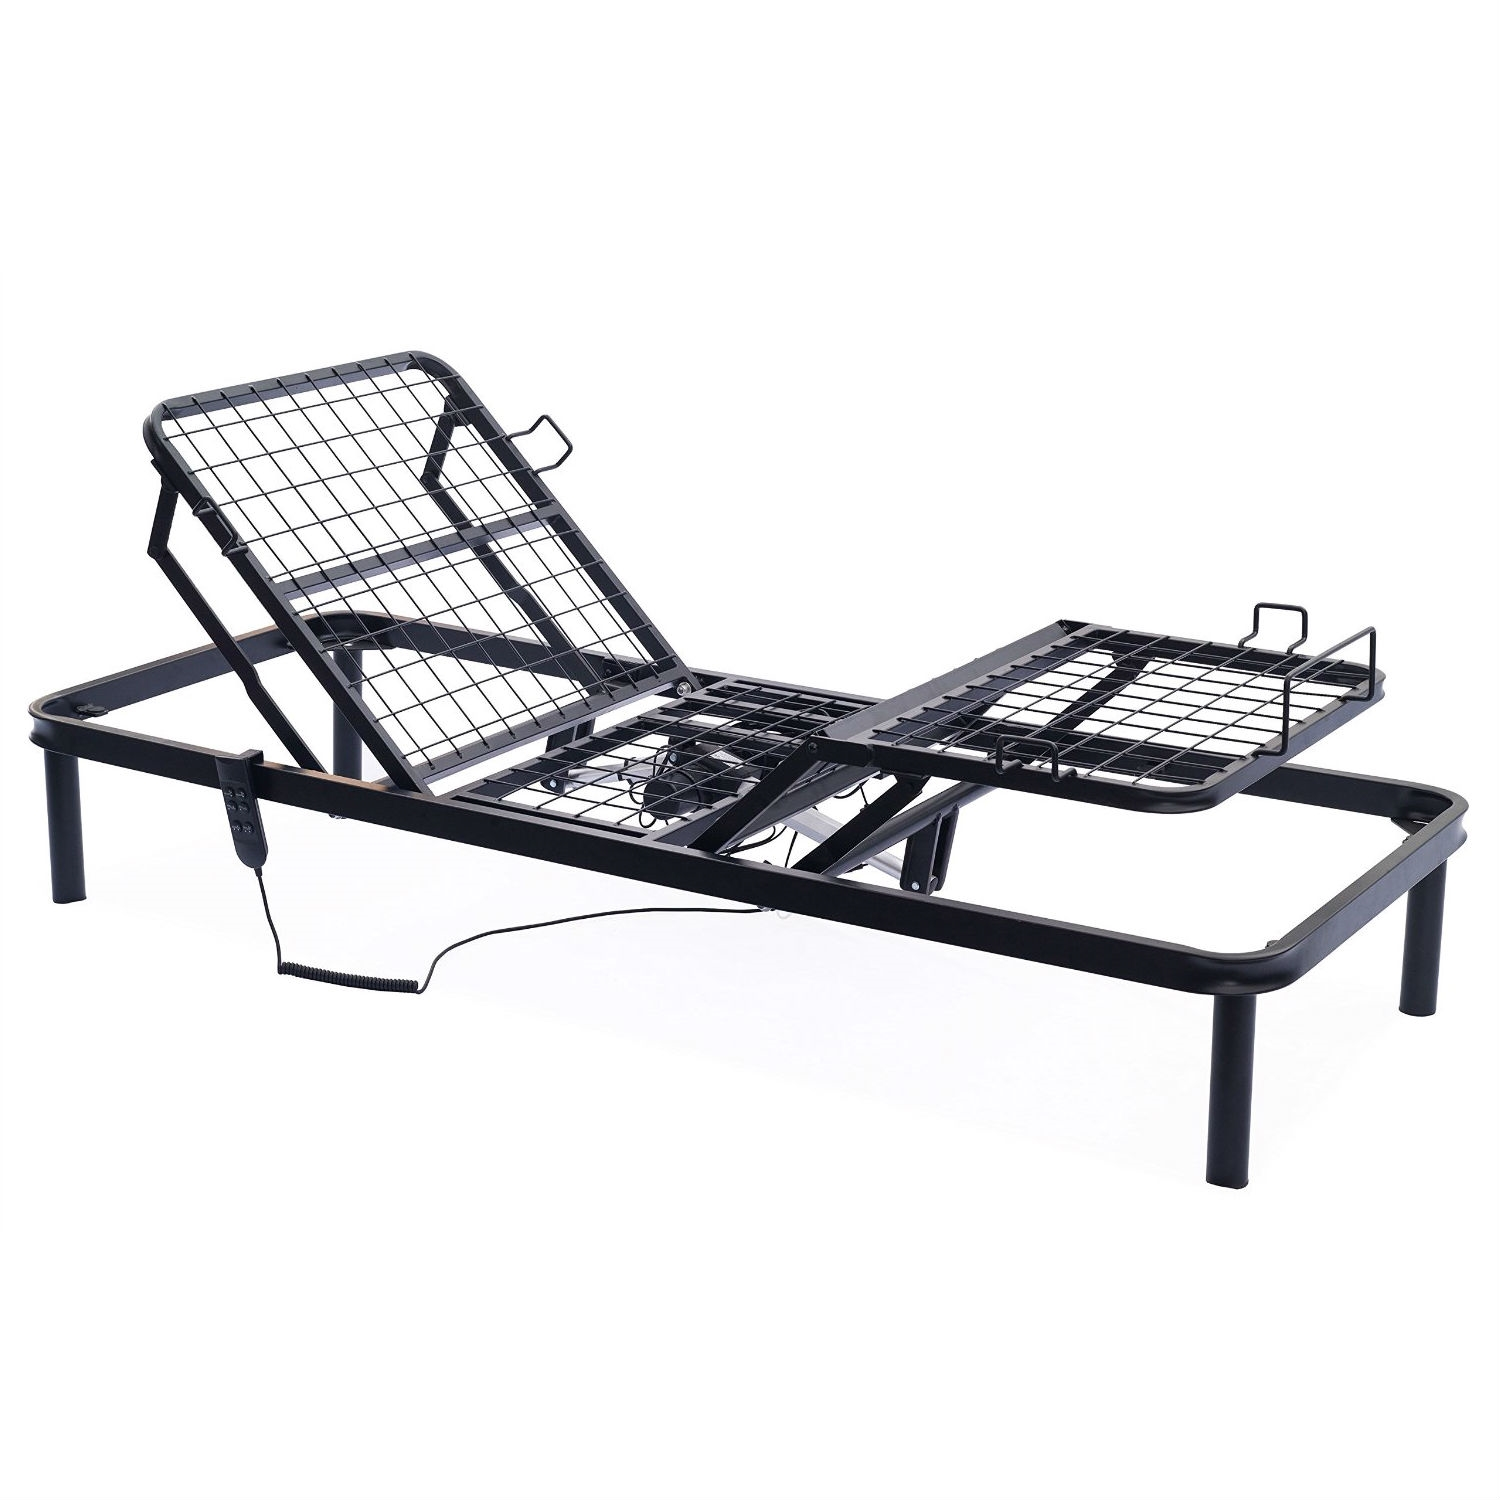 twin xl metal adjustable bed frame with remote - Electric Adjustable Bed Frames